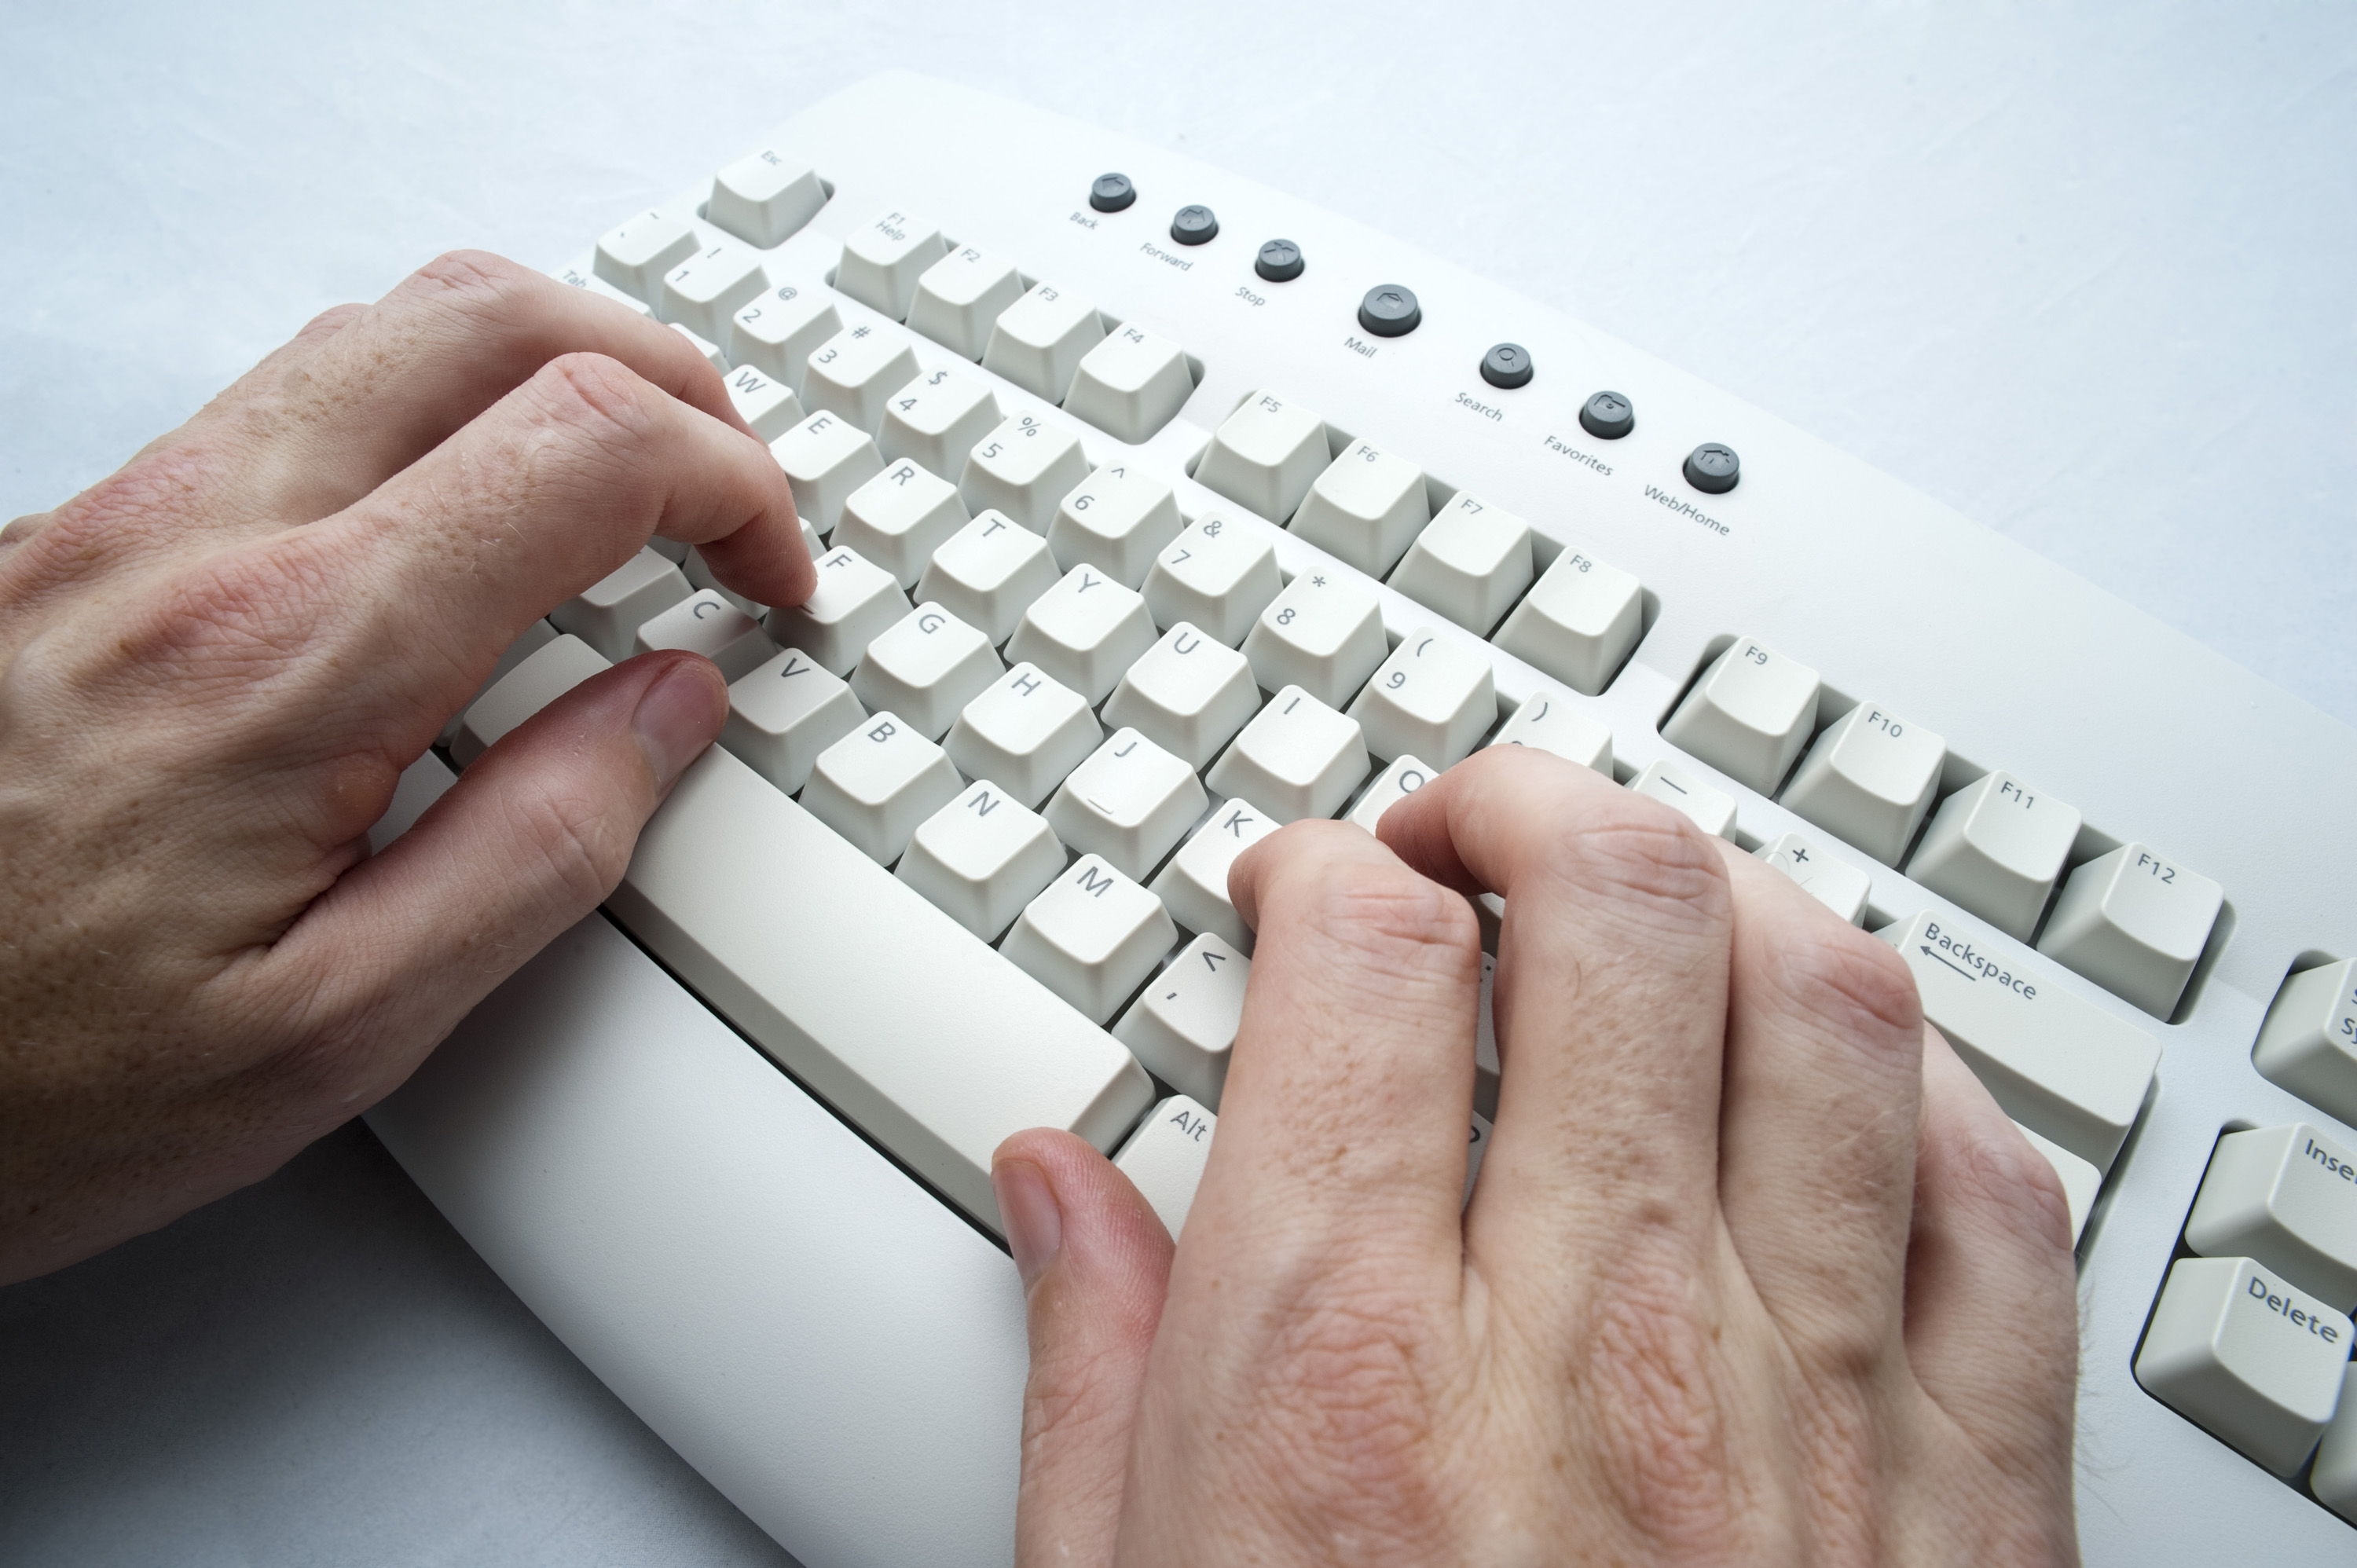 Free Stock Photo 3951-two hand typing | freeimageslive